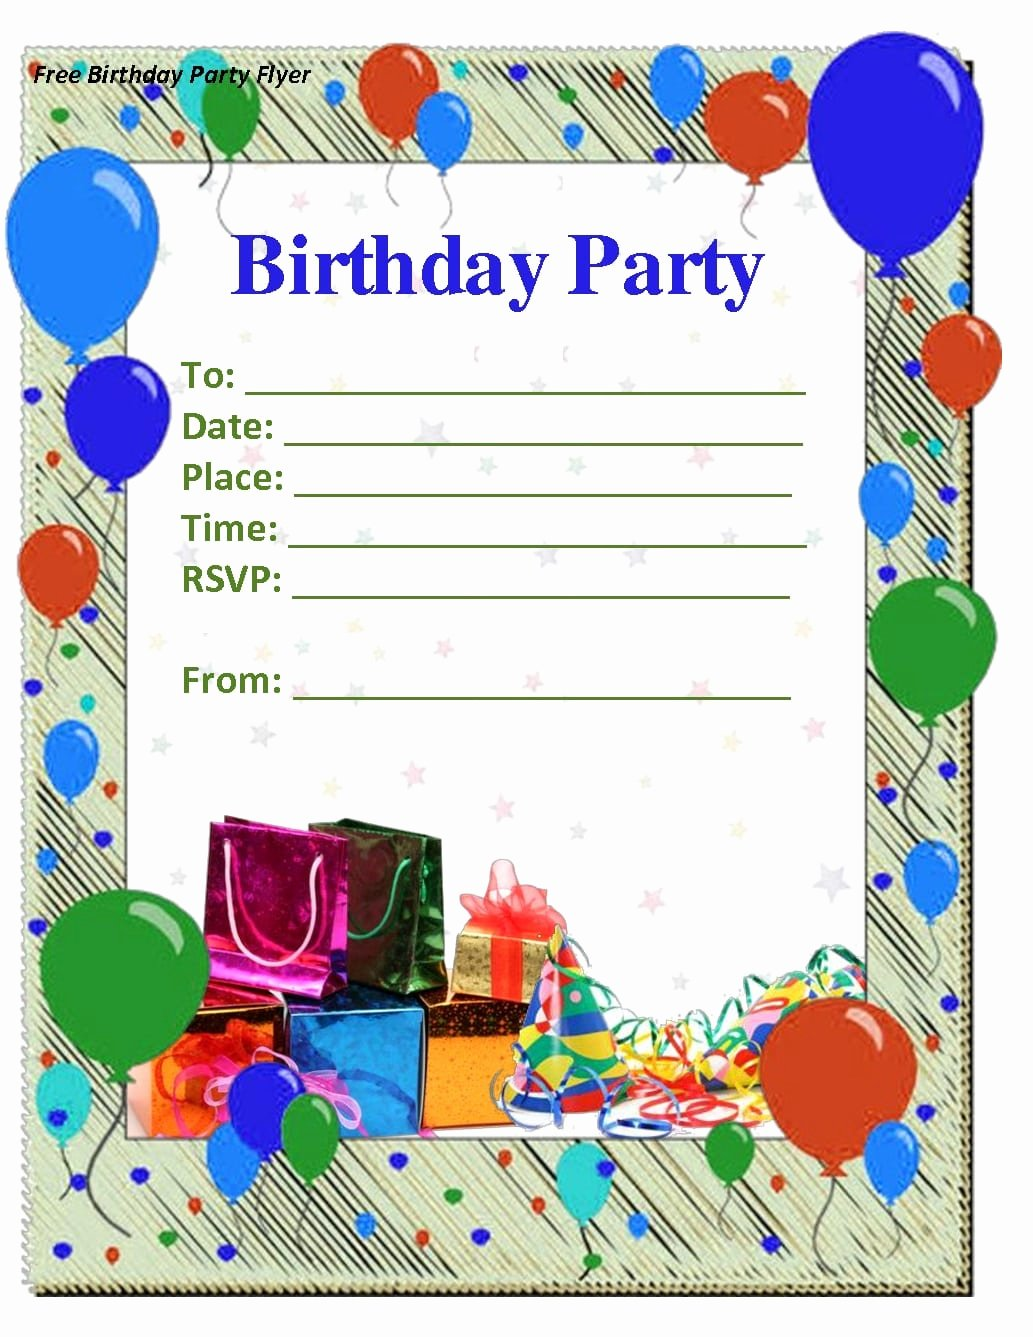 Birthday Invitation Template Word Unique Birthday Party Invitation Templates Free Download